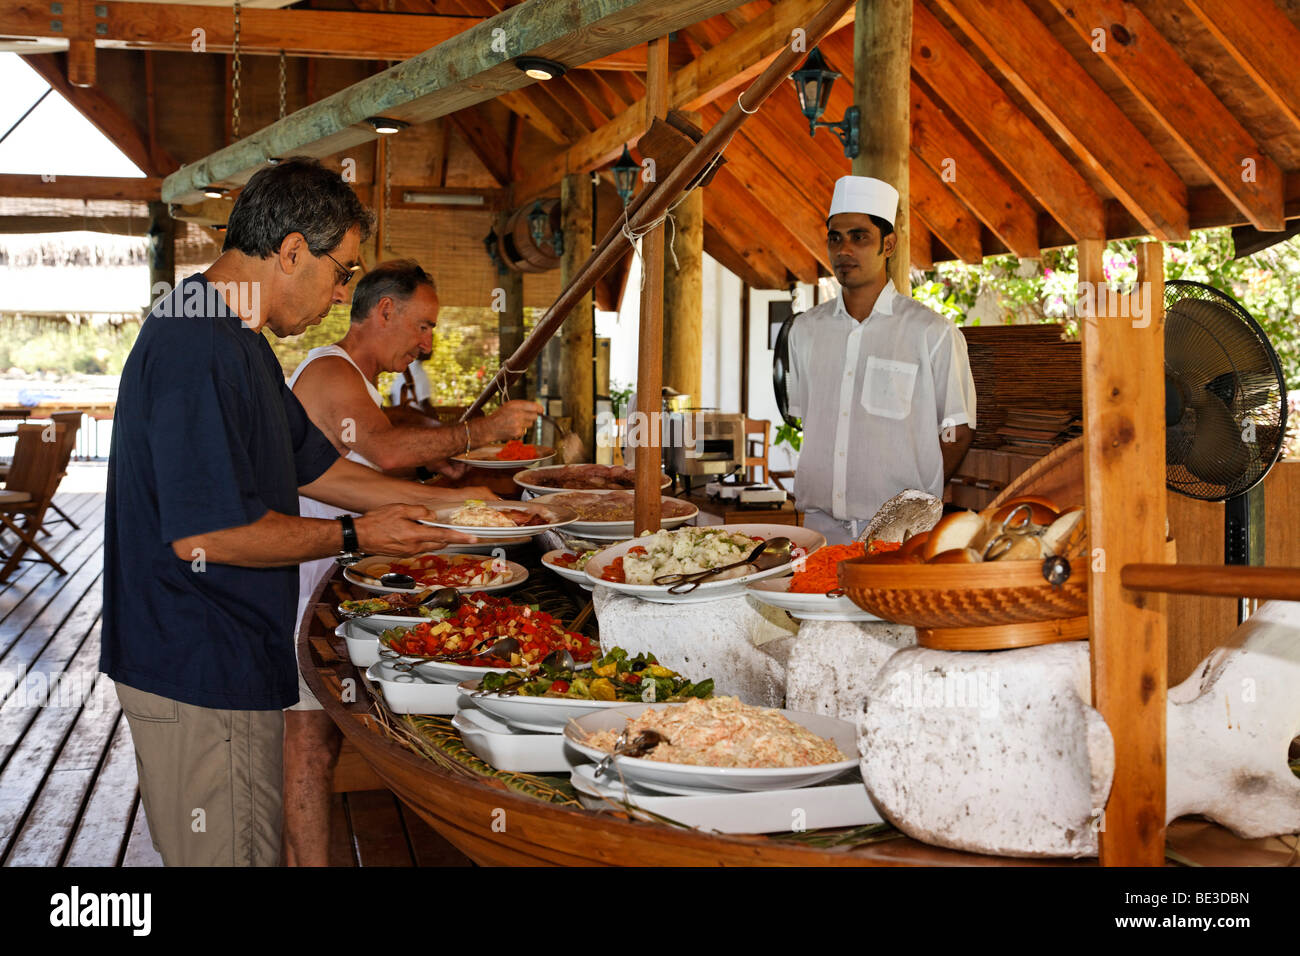 Guests at the buffet with cook, Maldive island, South Male Atoll, Maldives, Achipelago, Asia, Indian Ocean - Stock Image